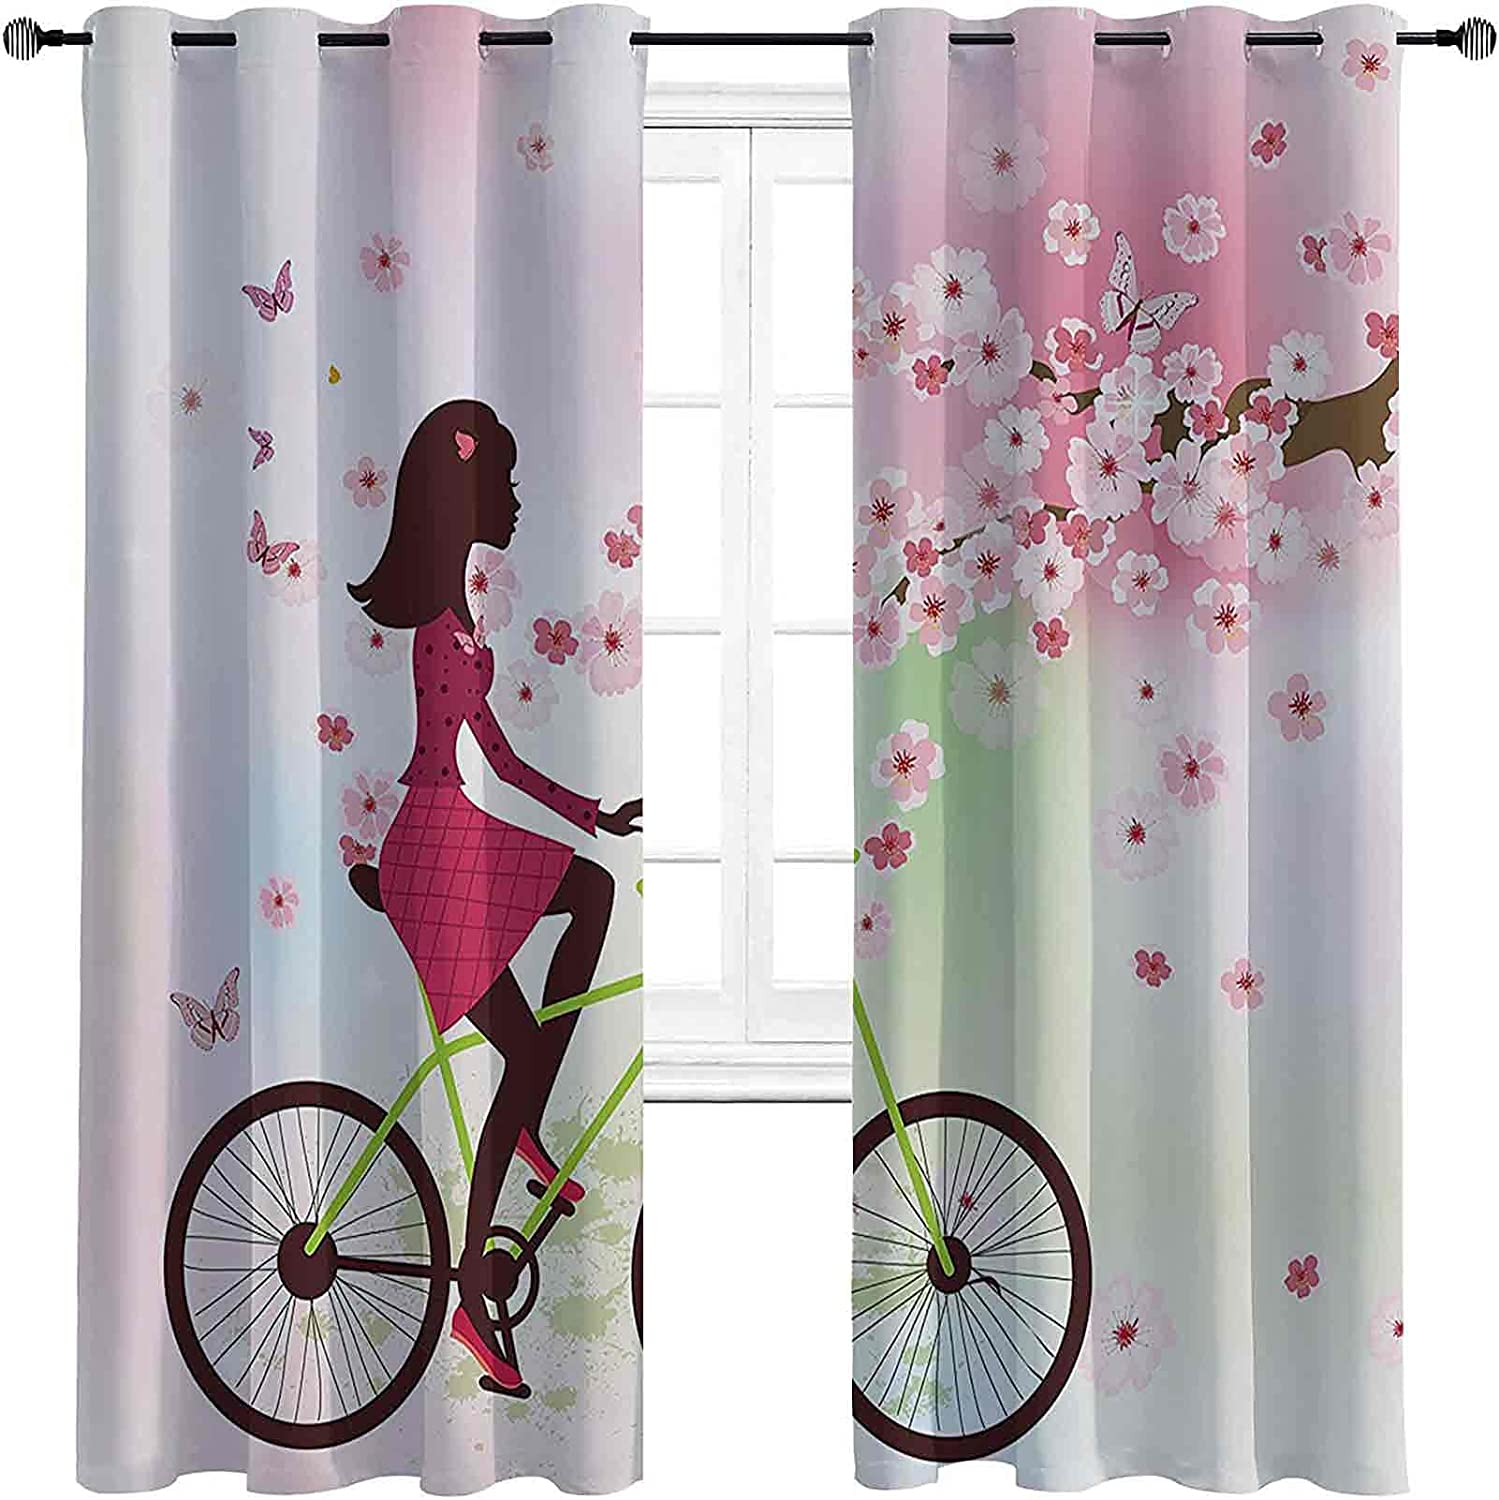 Teen Girls Indianapolis Recommendation Mall Decor Blackout Curtains Girl - Insulation Gasket On